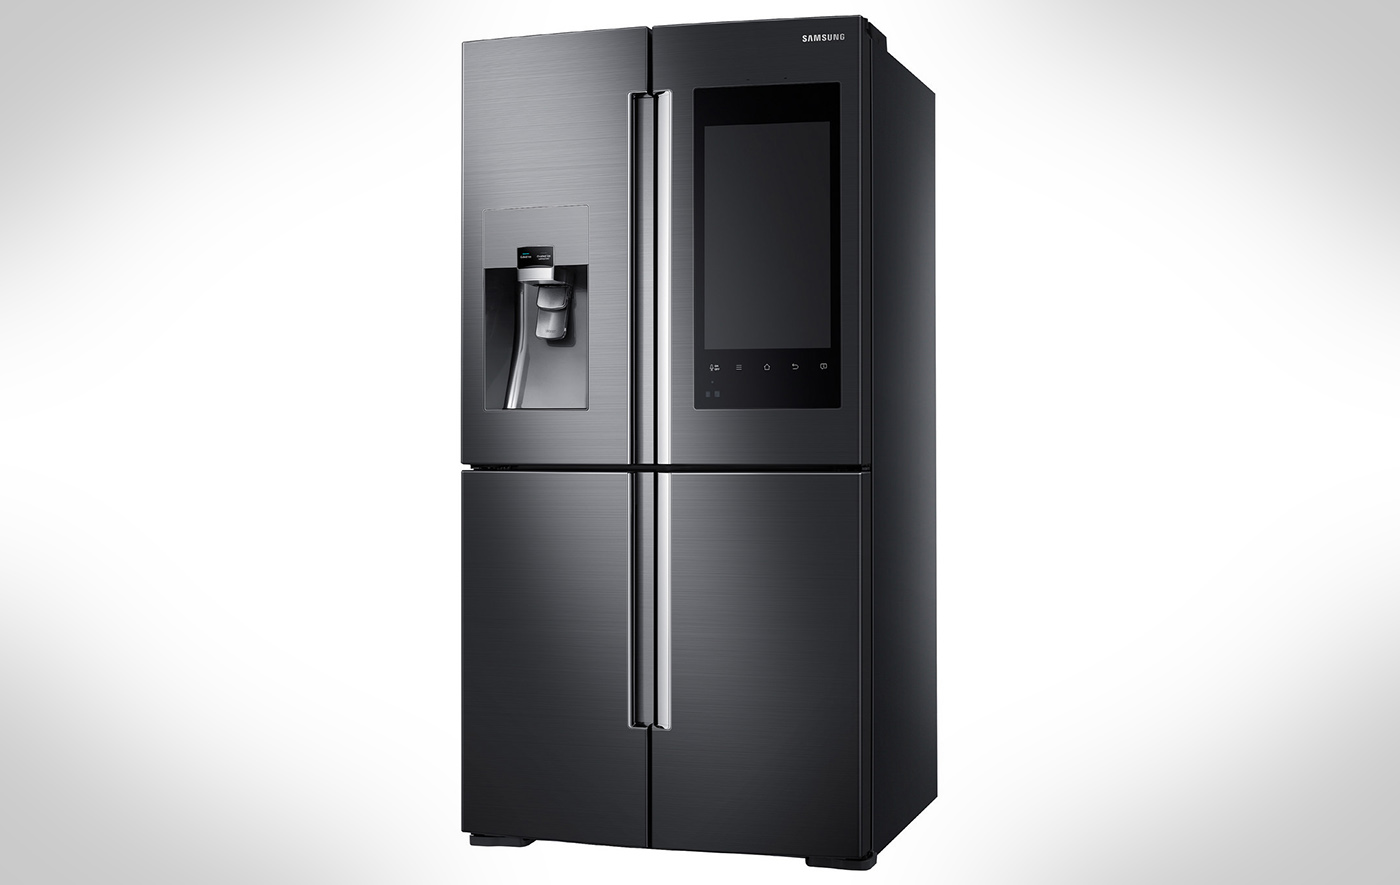 samsung 39 s latest smart fridge has cameras and a huge display. Black Bedroom Furniture Sets. Home Design Ideas